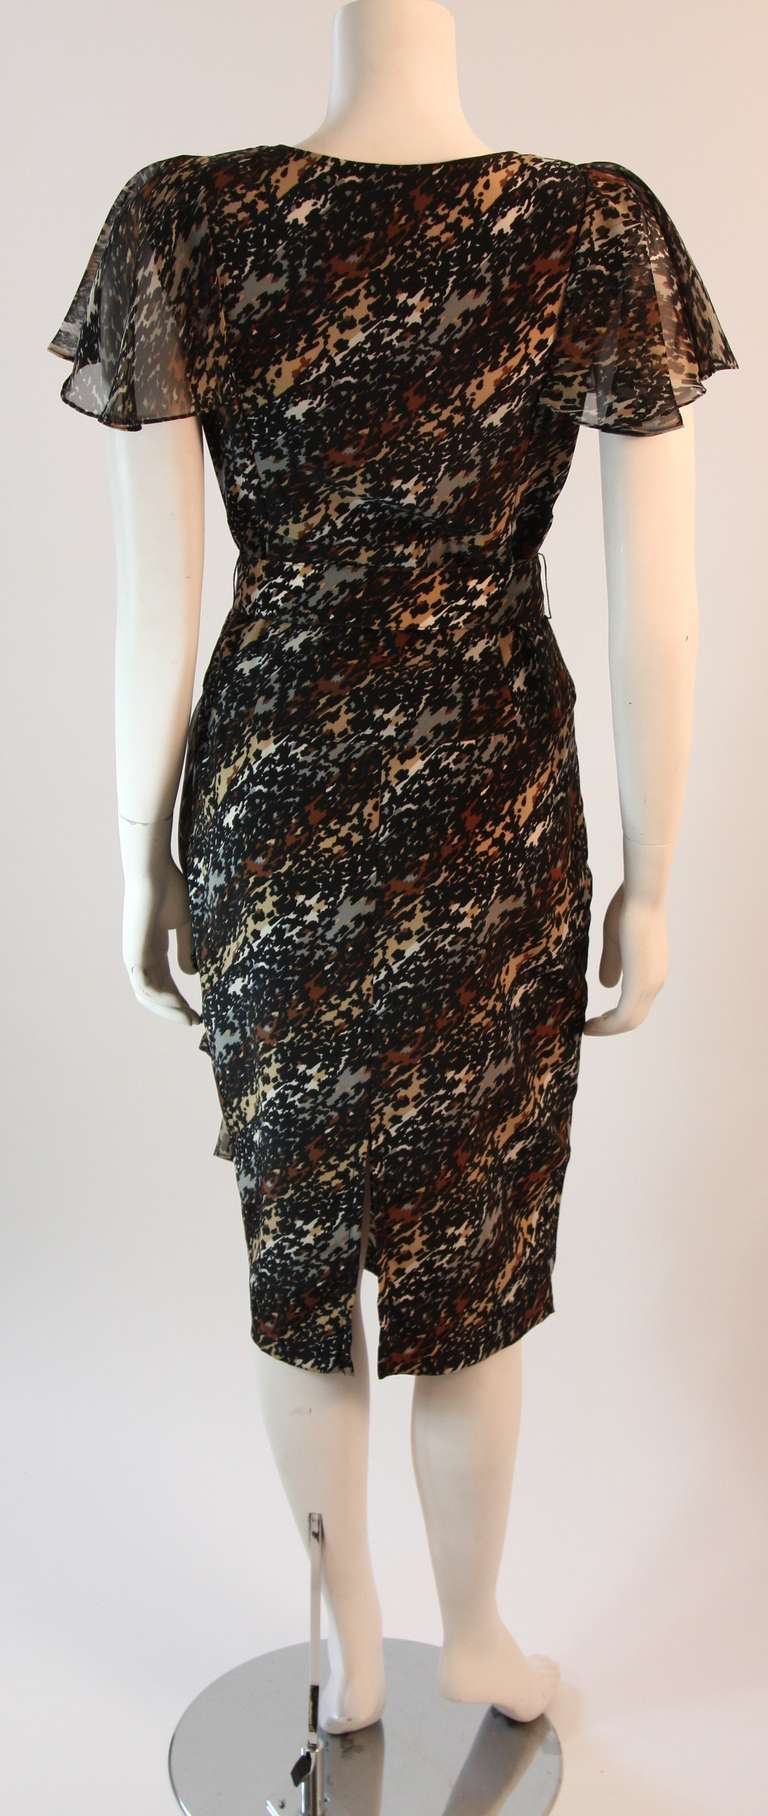 Paco Rabanne Paris Watercolor Animal Camouflage Print Ruffle Day Dress For Sale 2